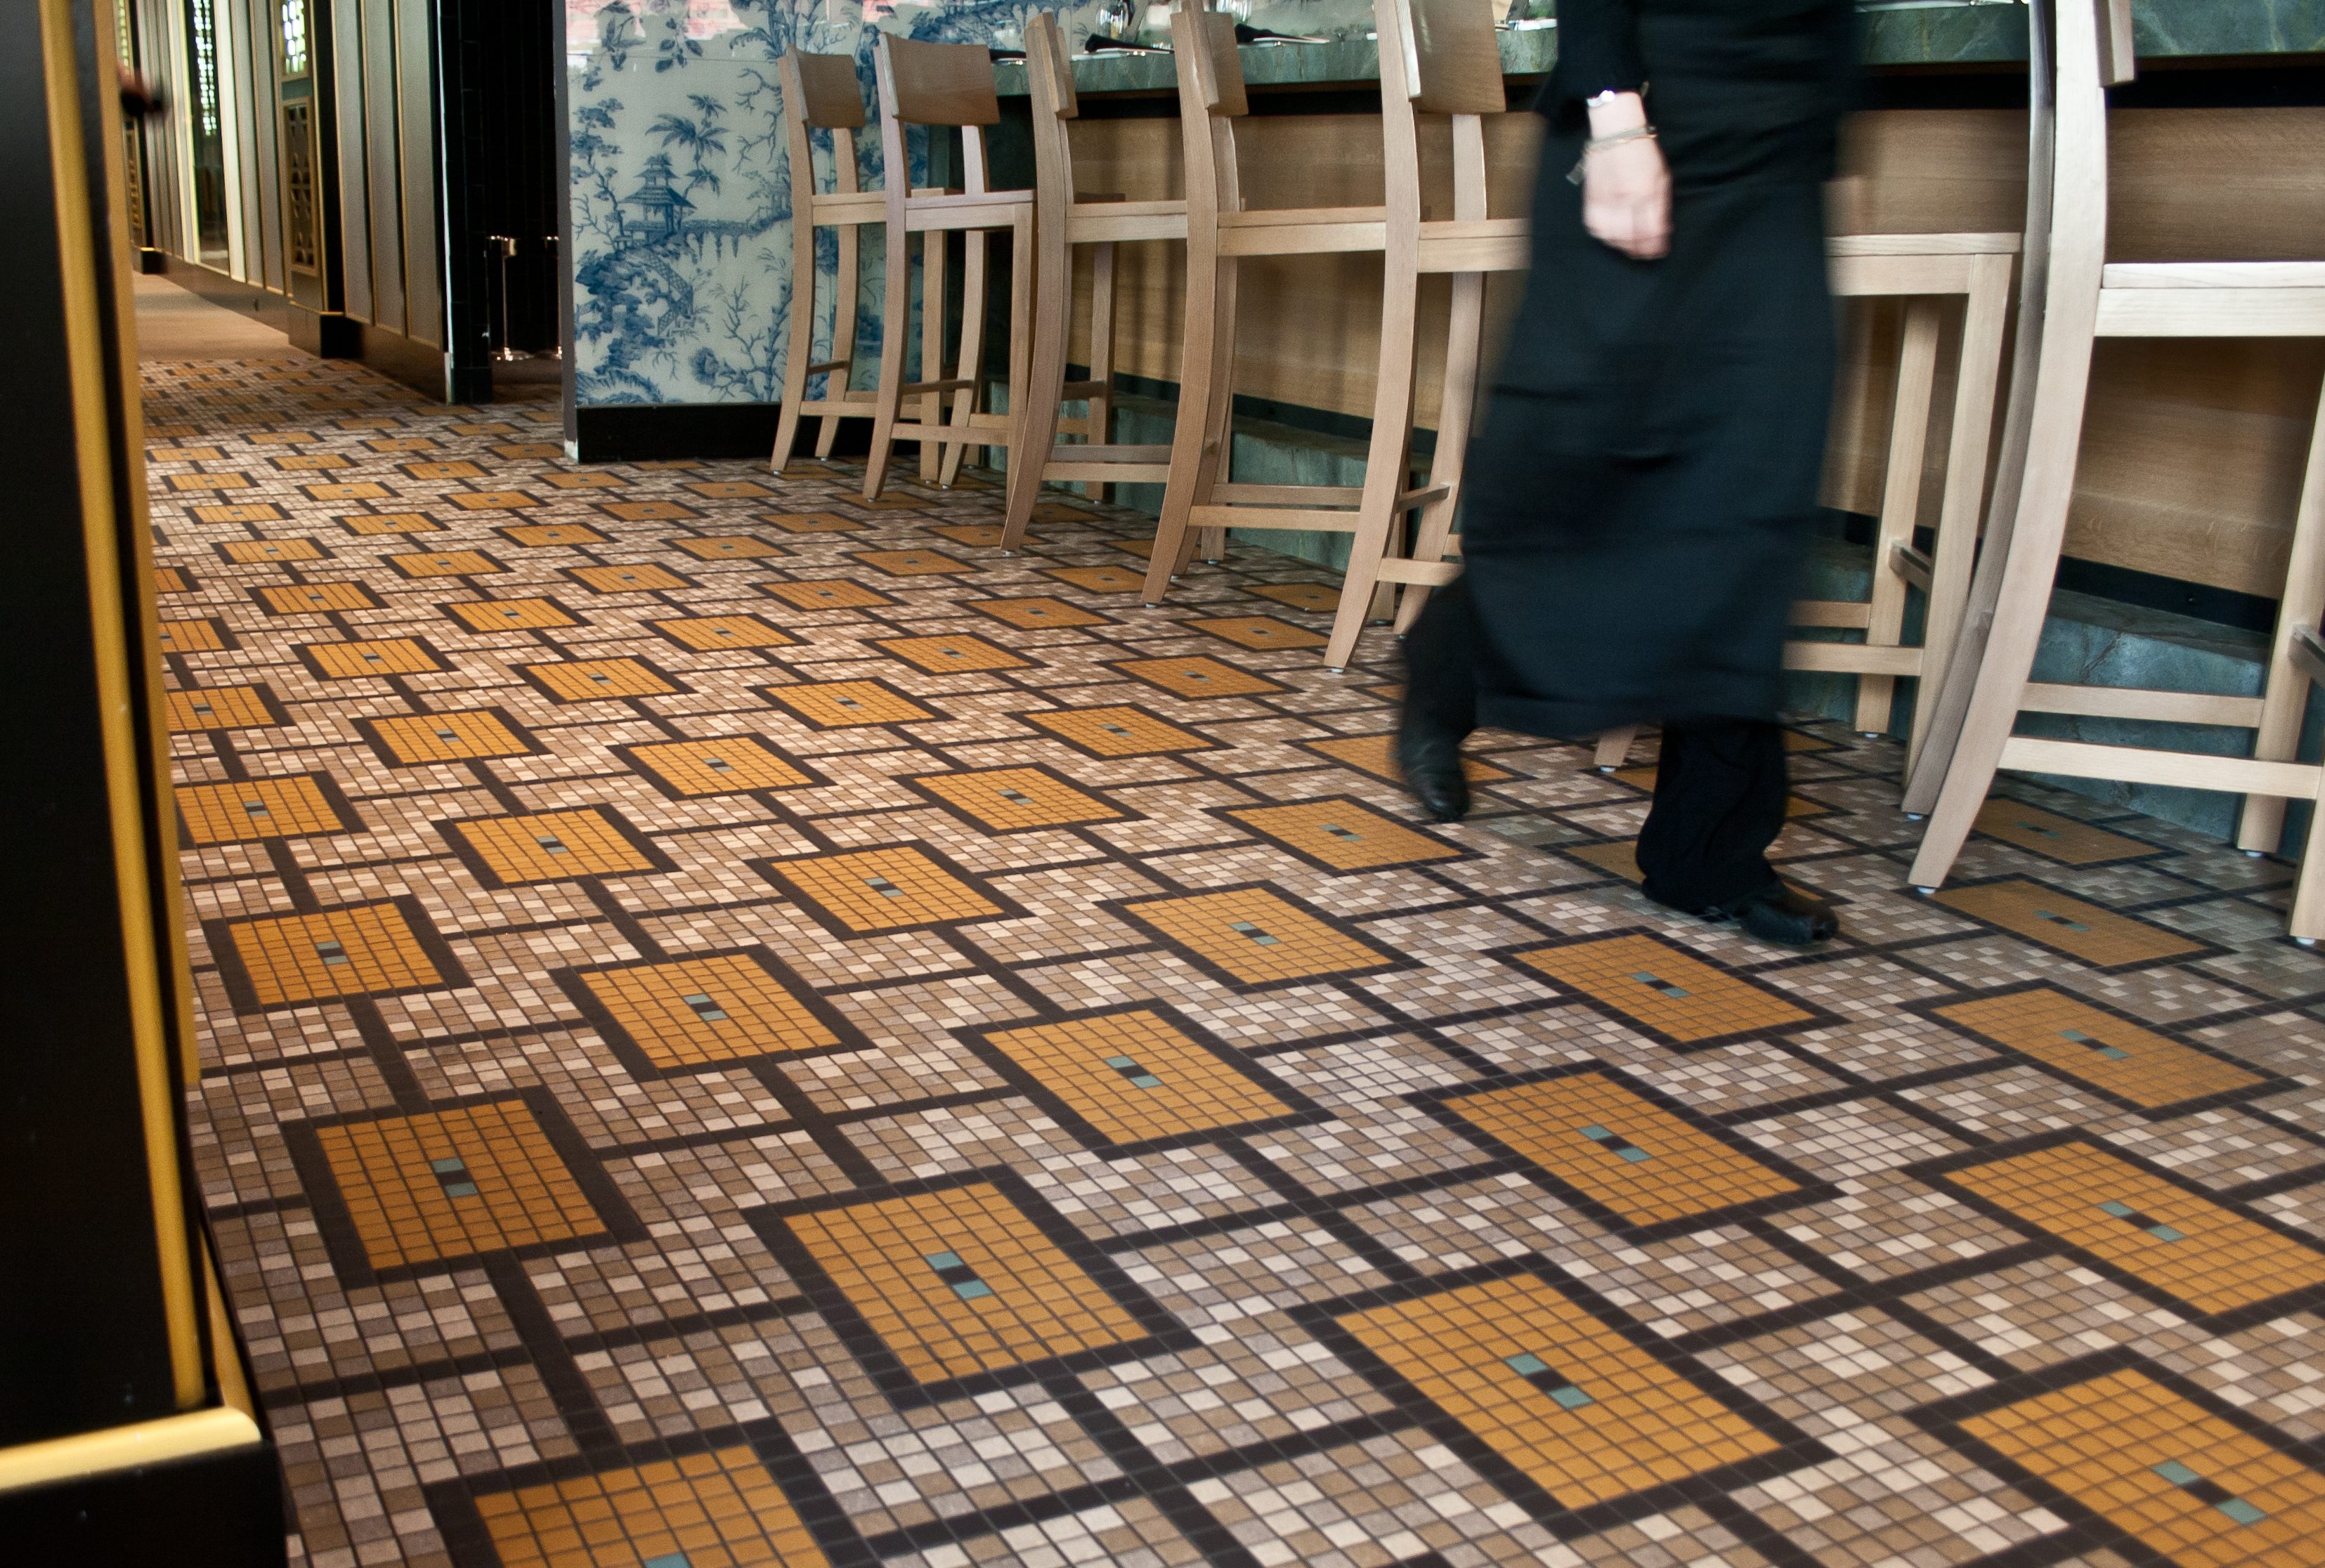 Empire restaurant floor porcelain tile pattern artaic download above image dailygadgetfo Choice Image